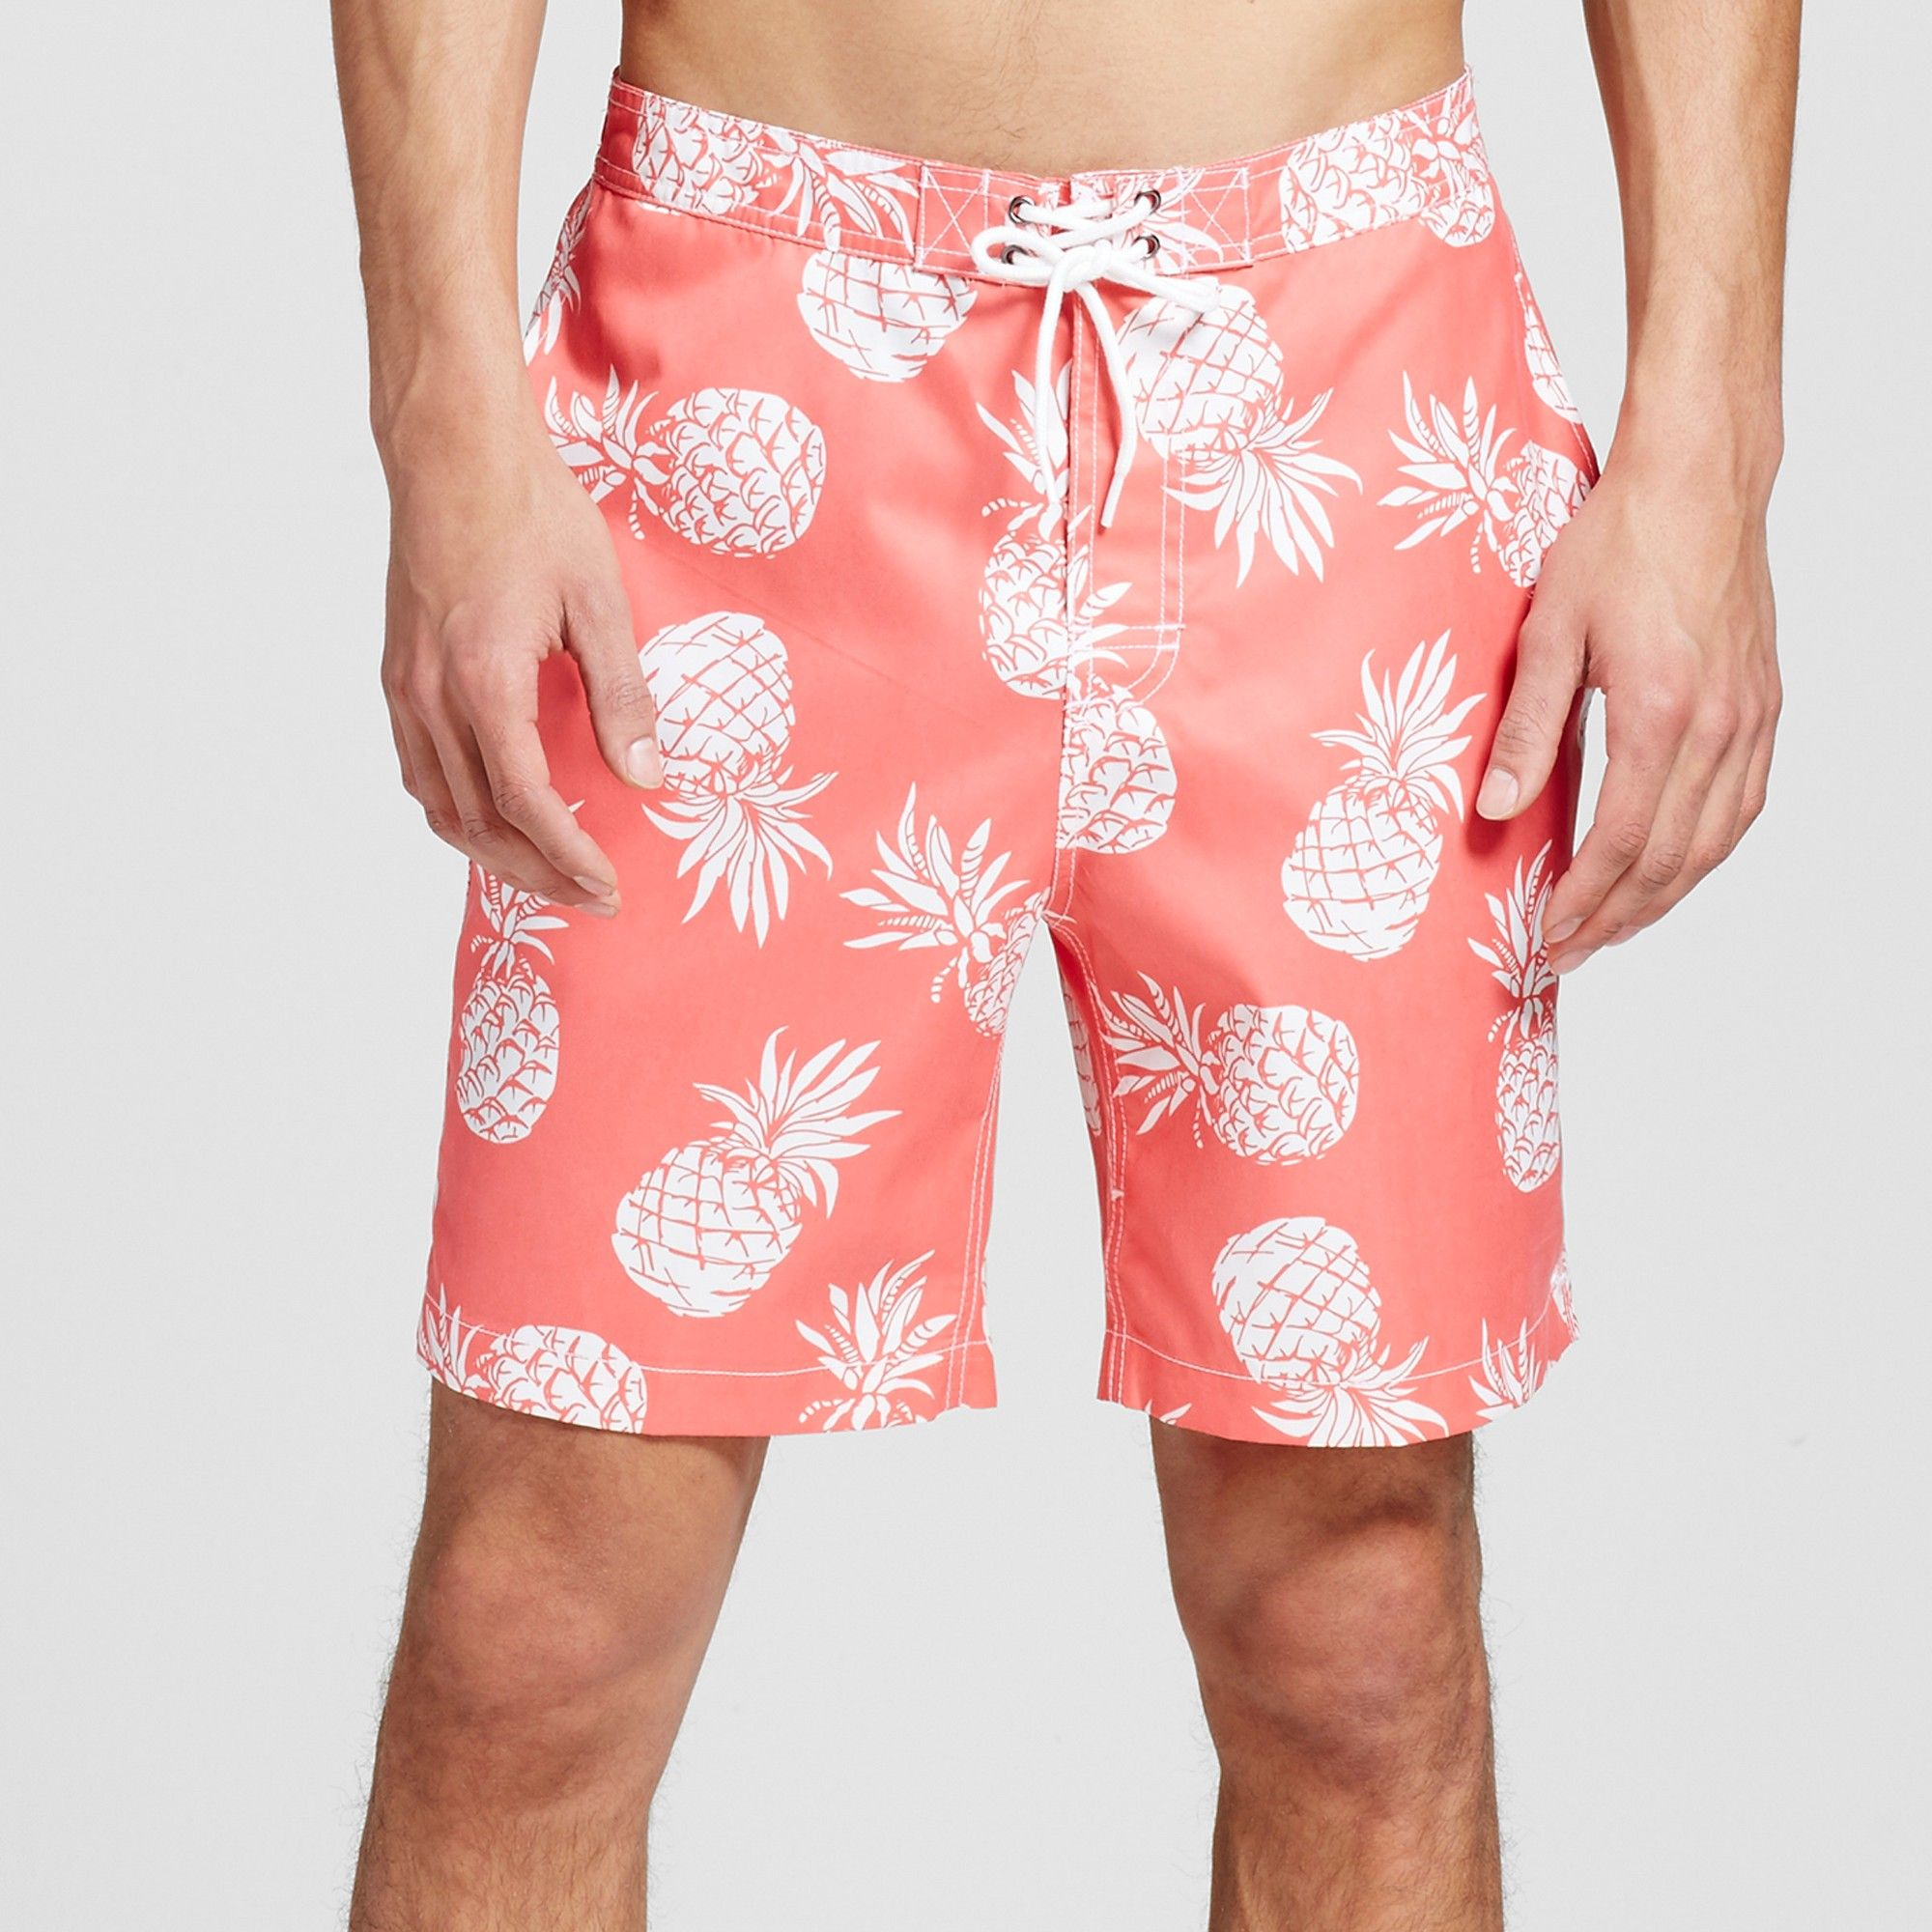 90a8d248c2 Men's Pineapple Swim Trunks Coral Xxl - Trunks Surf & Swim, Red ...